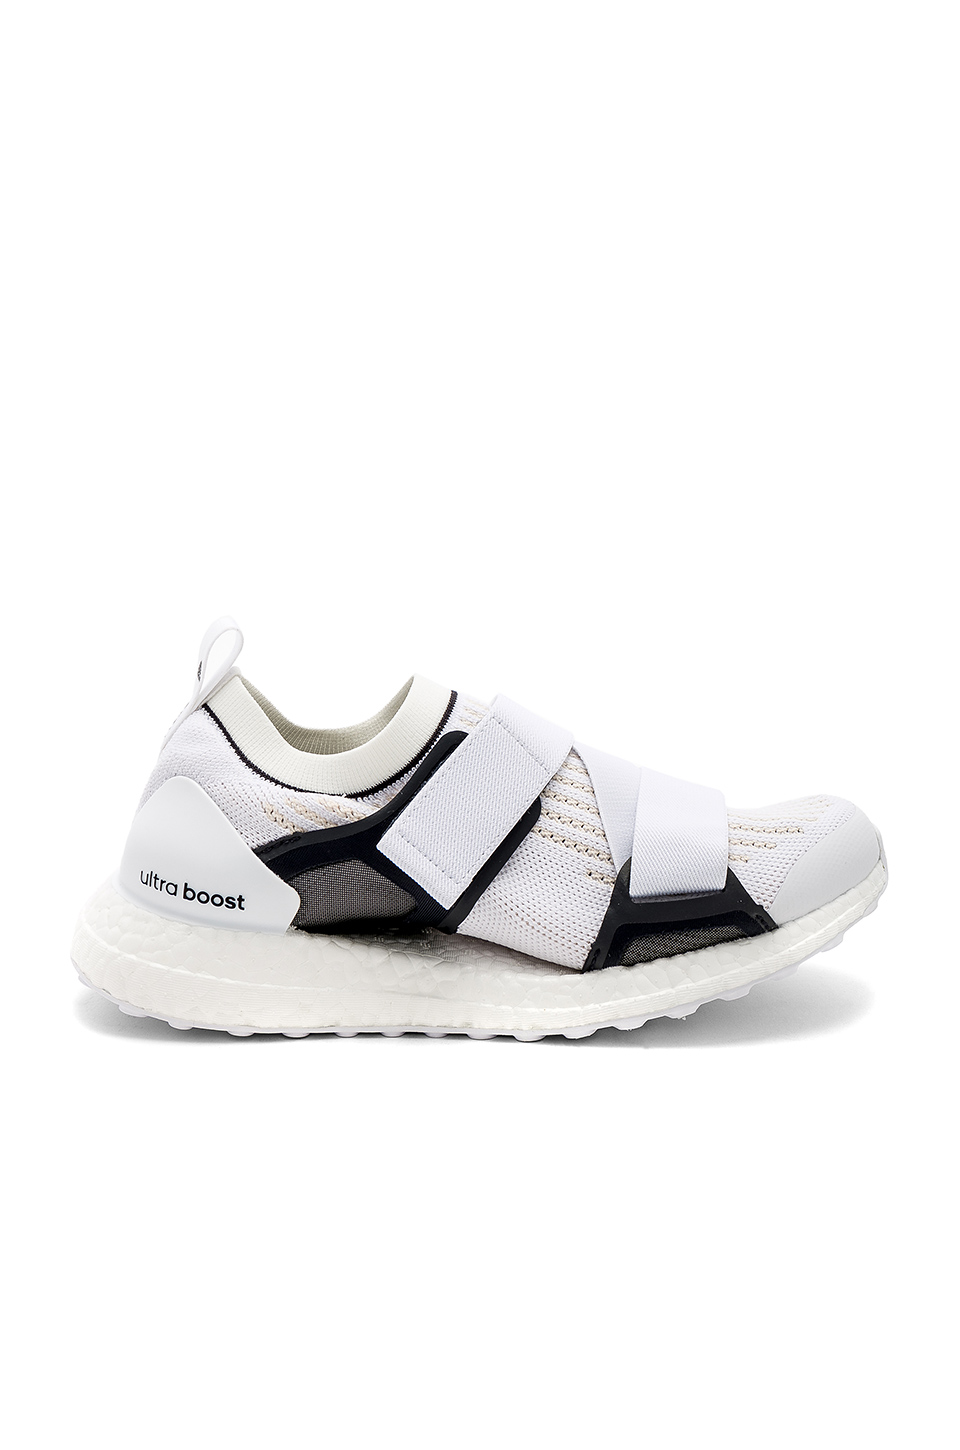 787c861accb Buy Original adidas by Stella McCartney UltraBOOST X Sneaker at ...